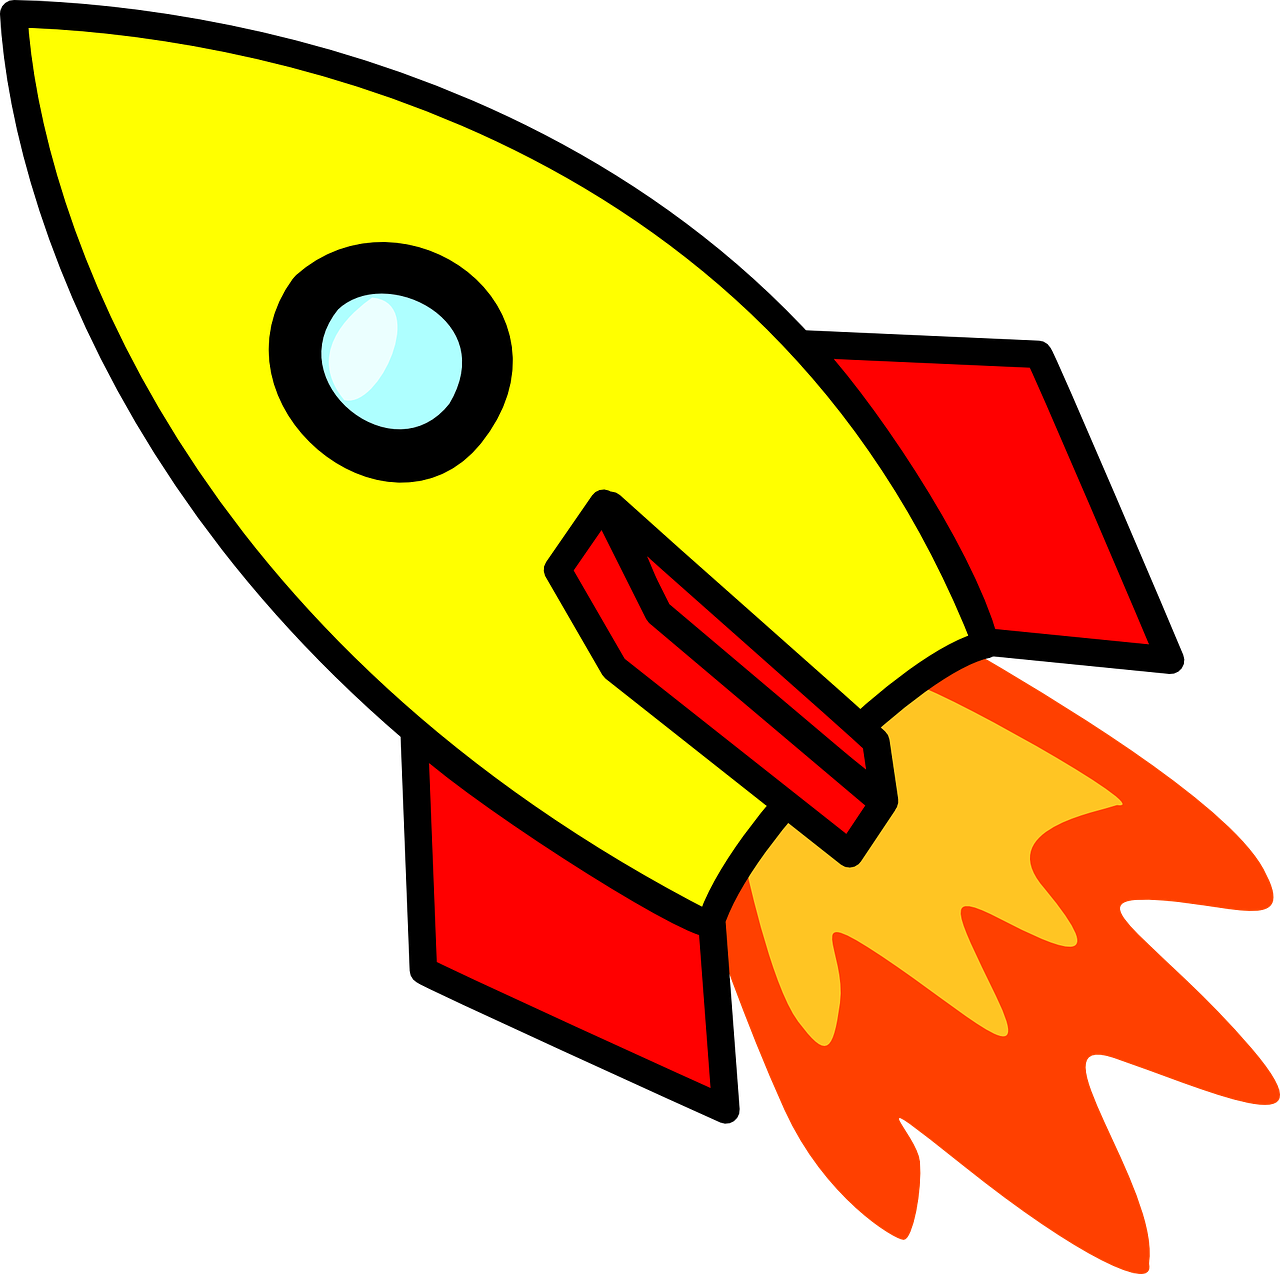 Shuttle clipart space exploration. Free image on pixabay